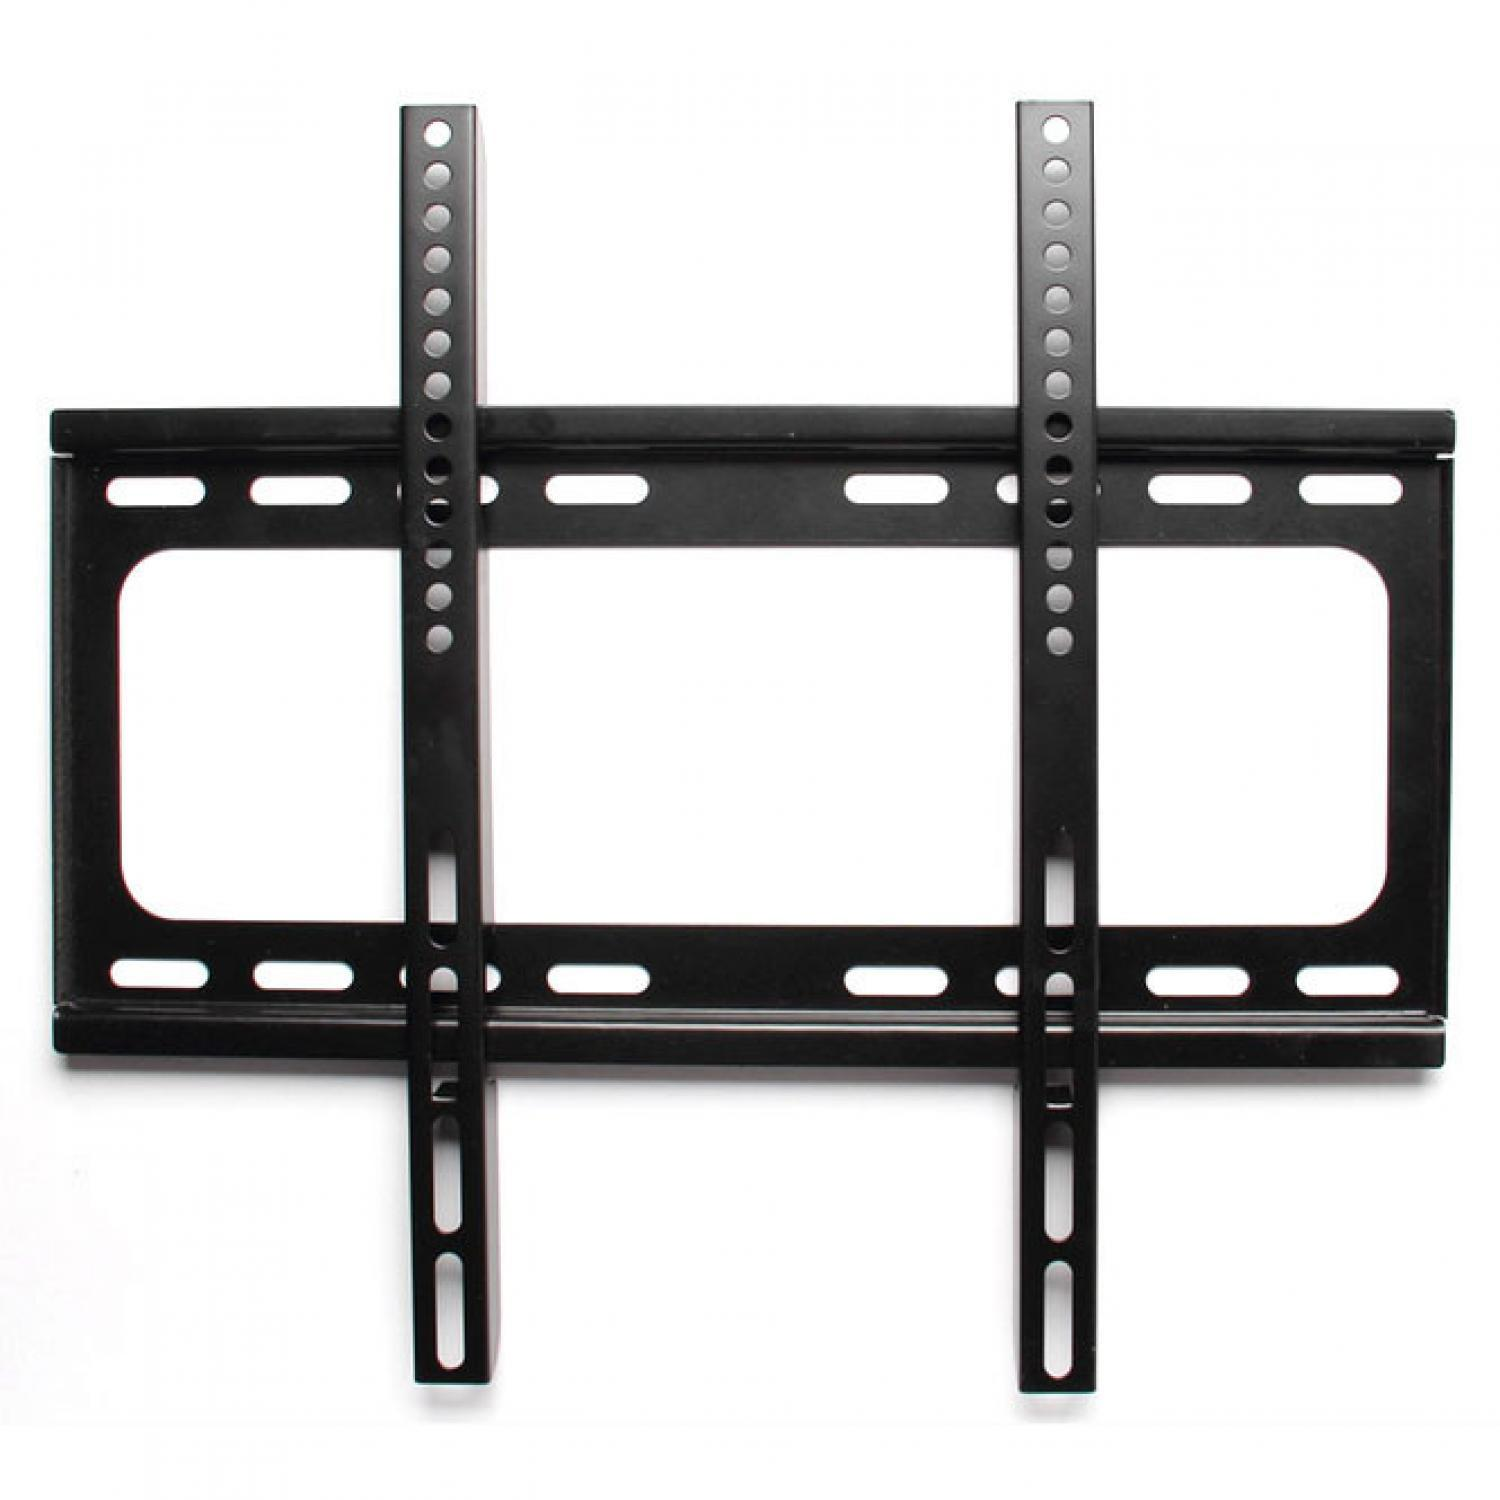 TV Metal Thick 400 x 400 Pitch 4.5cm Wall Distance for 32-60 Inch TV